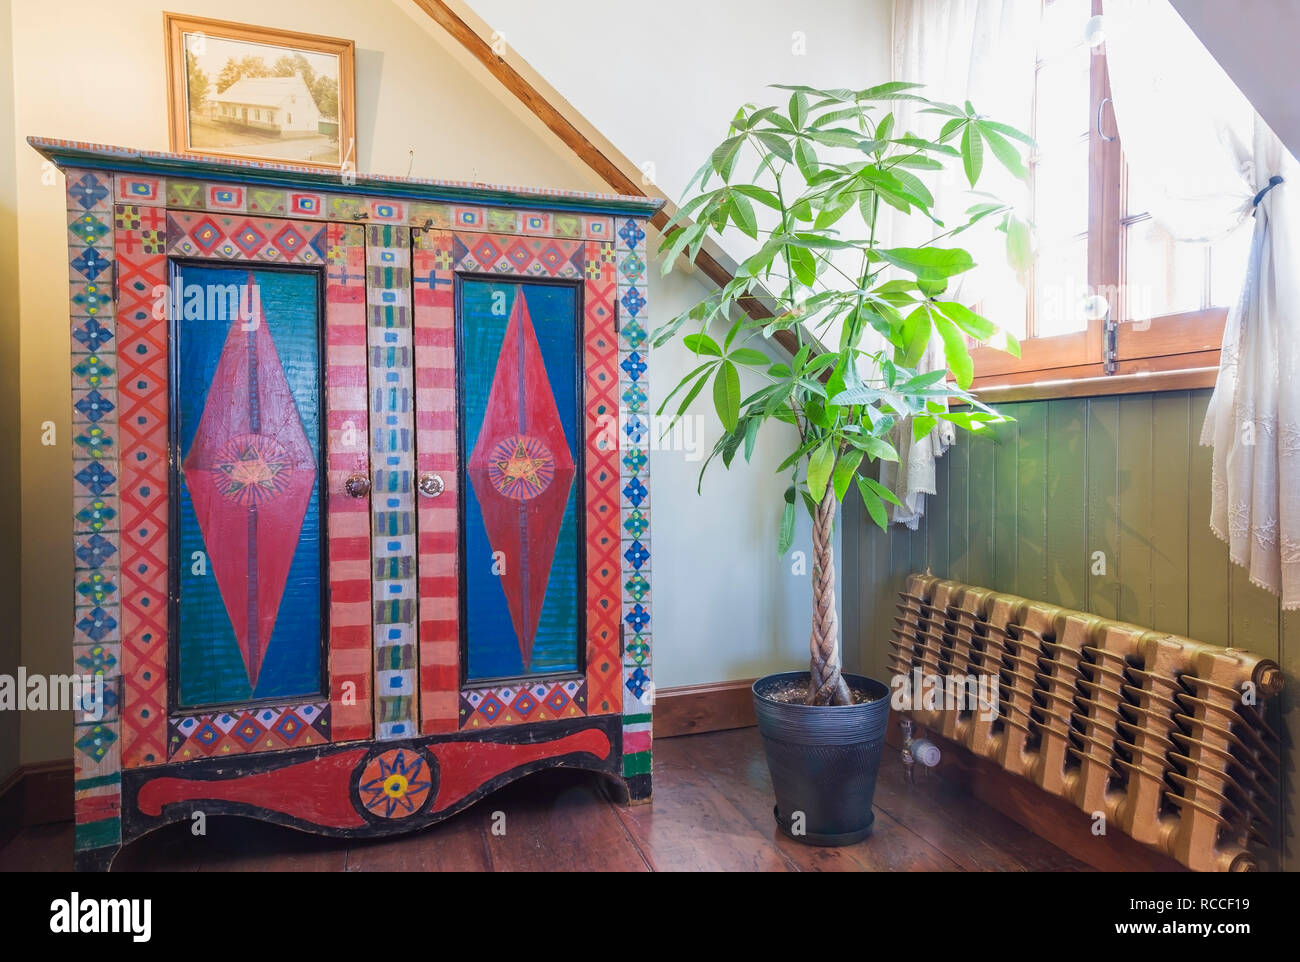 Master bedroom with colourful wooden antique armoire with diamond point design, green house plant next to old hot water heating radiator in old house - Stock Image